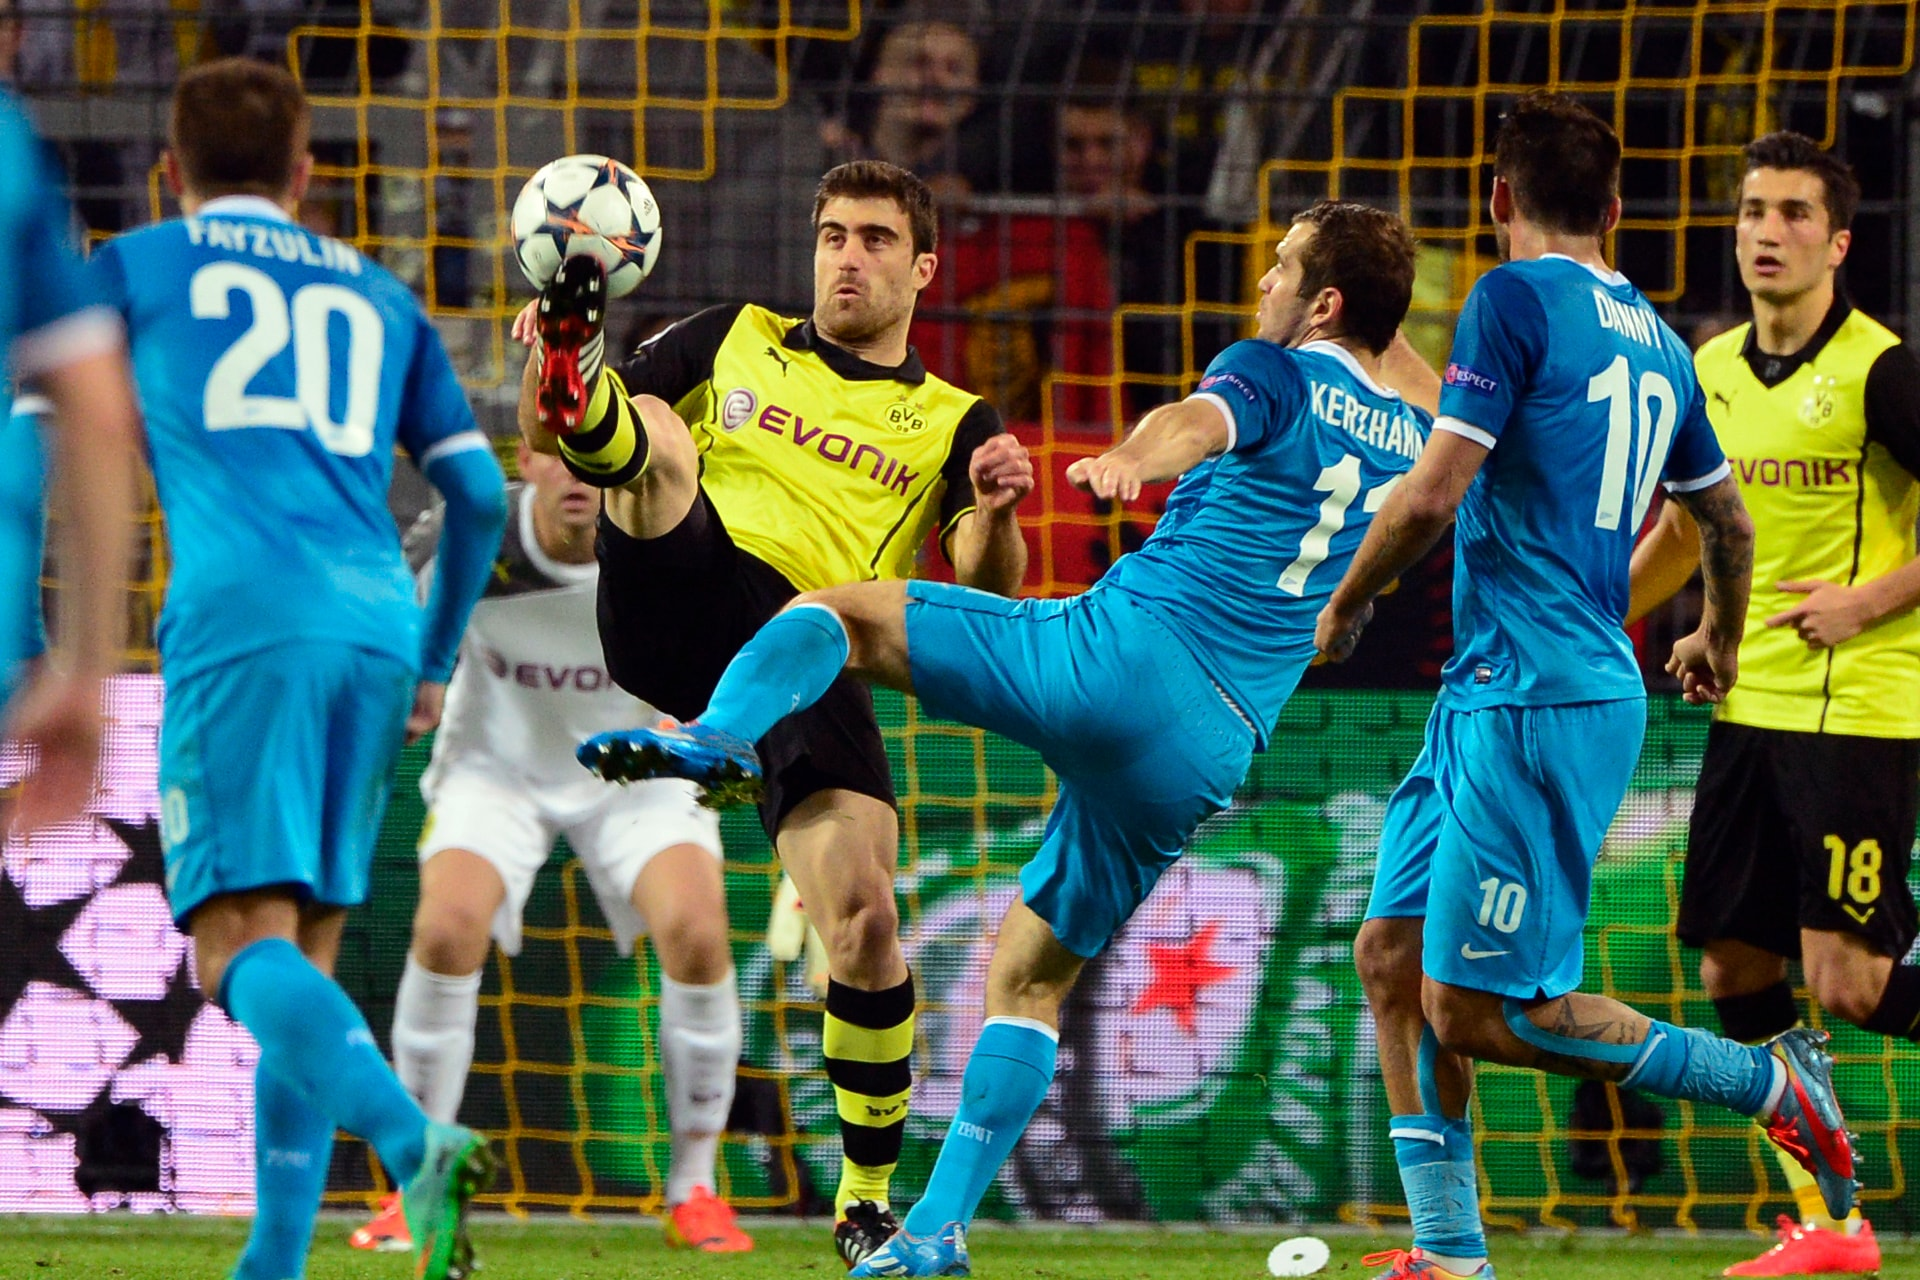 Champions League: Chelsea spoil Drogba's return, Ronaldo sizzles for Madrid